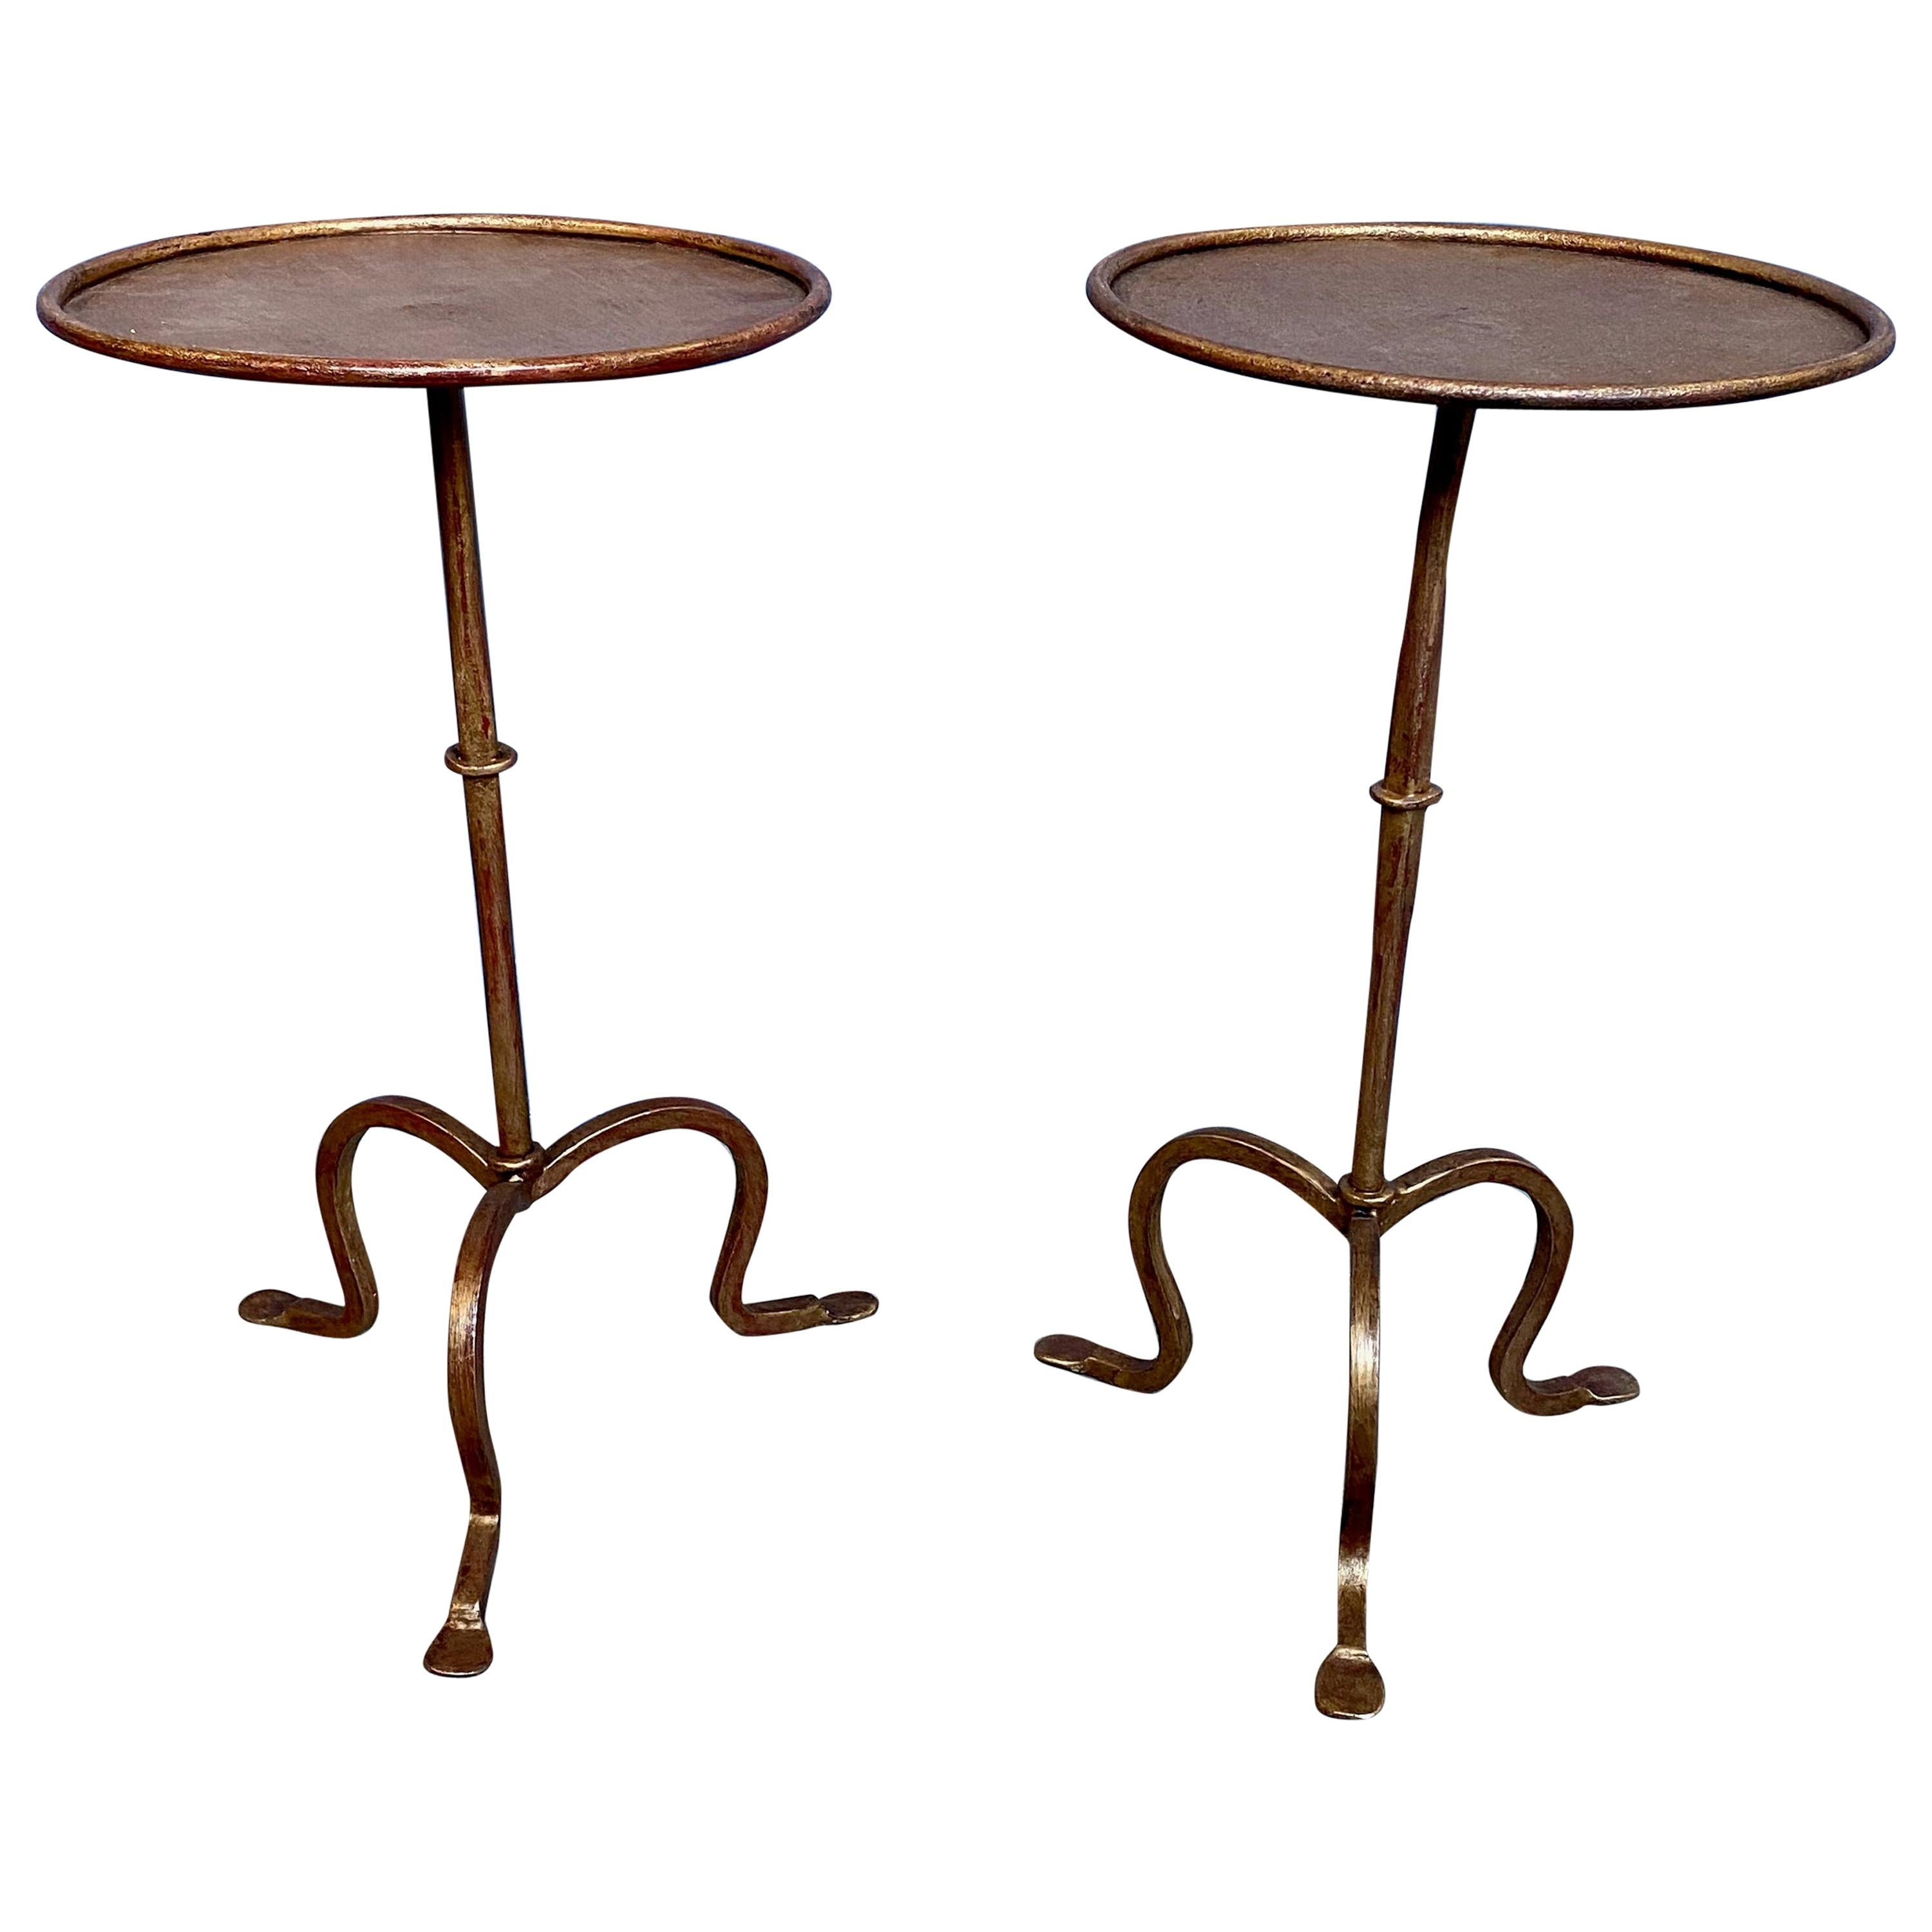 Pair of Small Gilt Iron Martini or End Tables